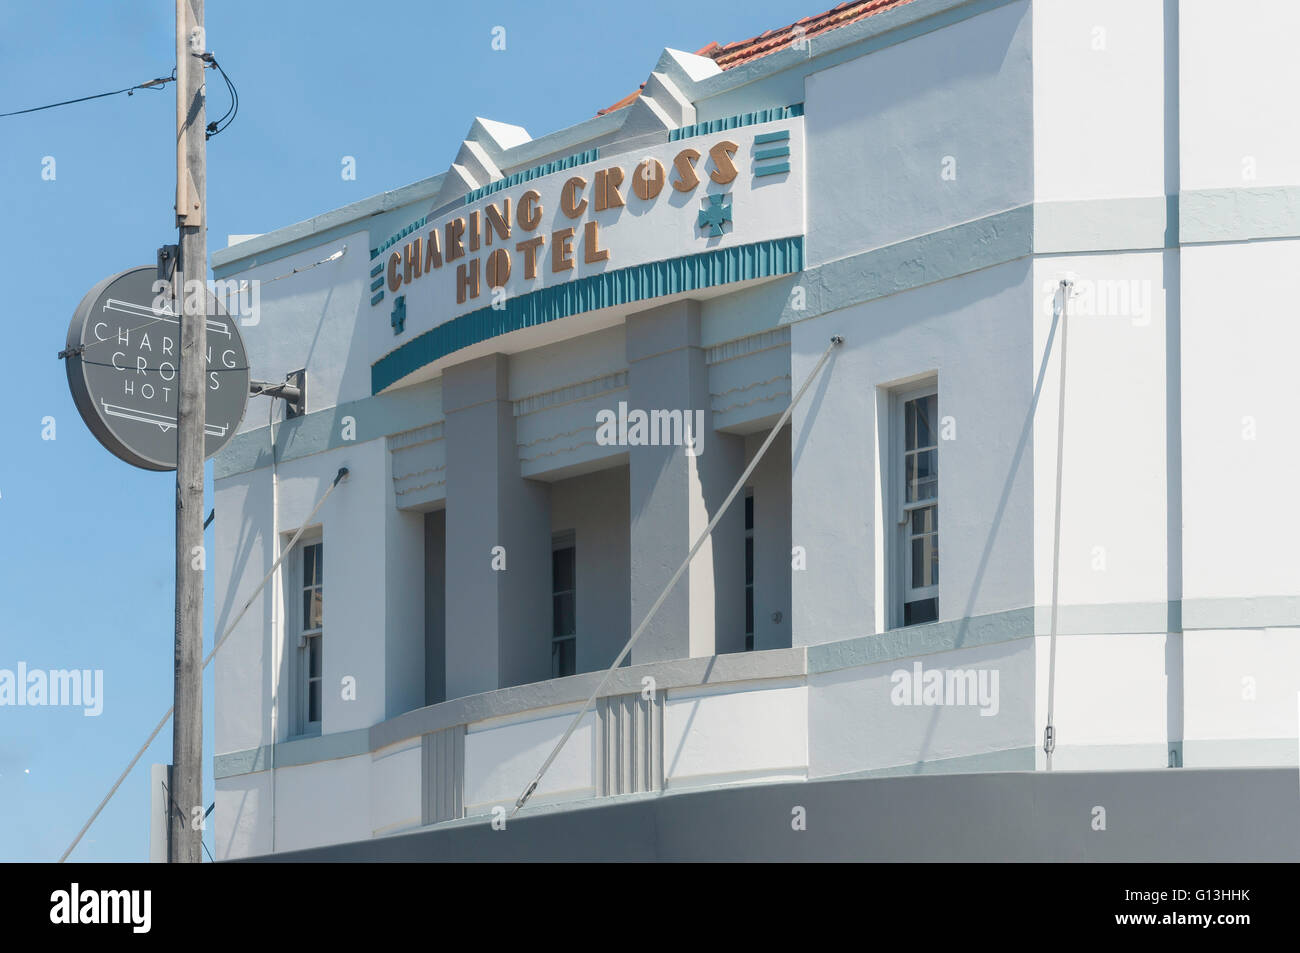 Art Deco Charing Cross Hotel, Carrington Road, Waverley, Sydney, New South Wales, Australia - Stock Image